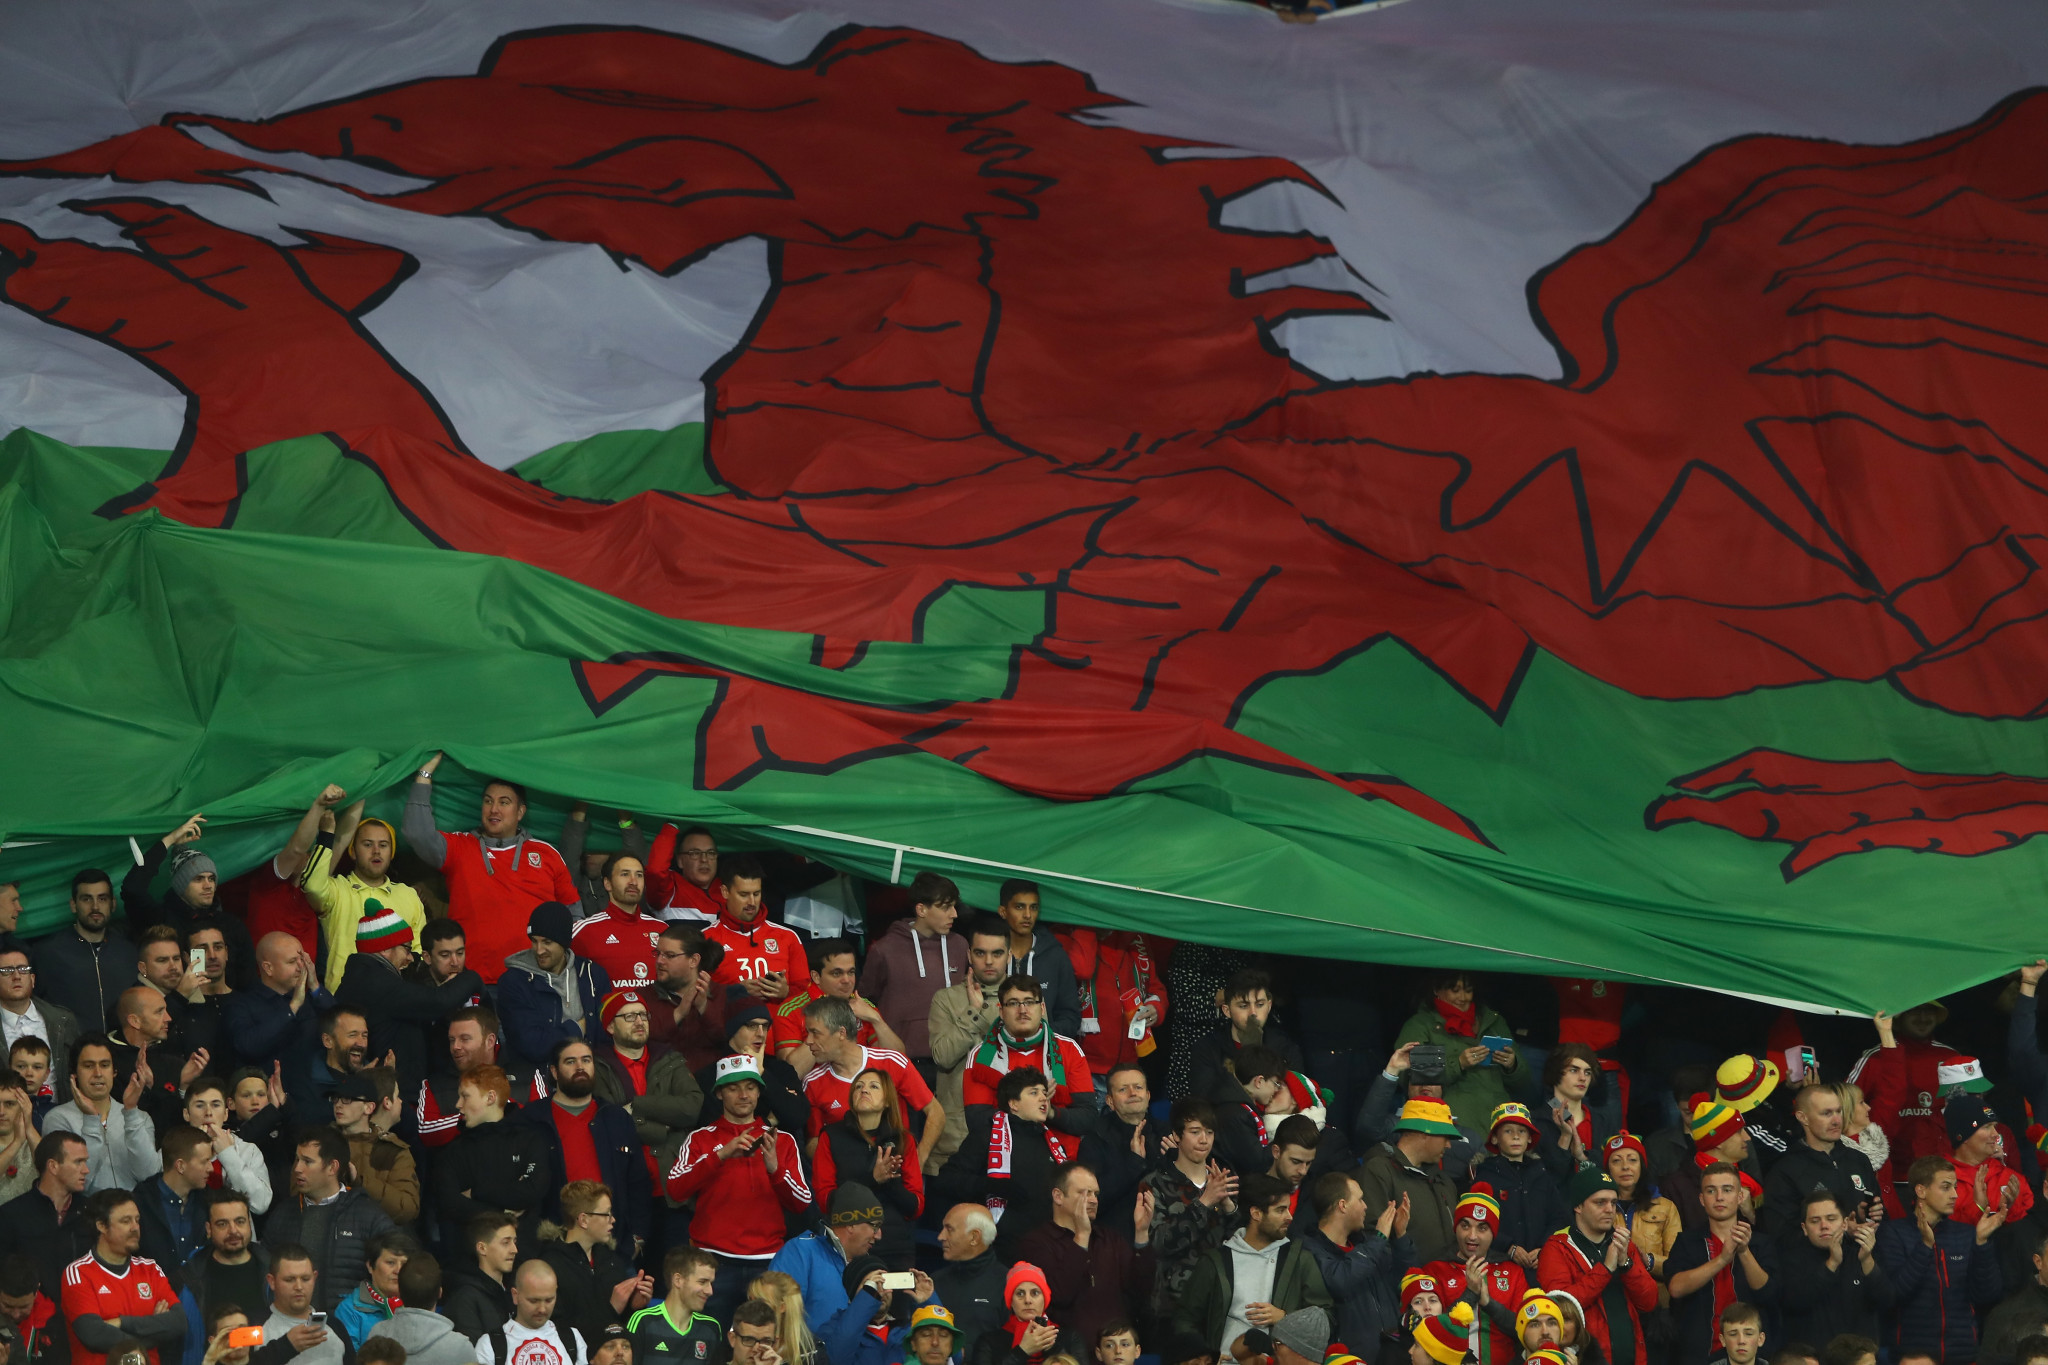 Plaid Cymru promises Commonwealth Games bid if elected Welsh Government